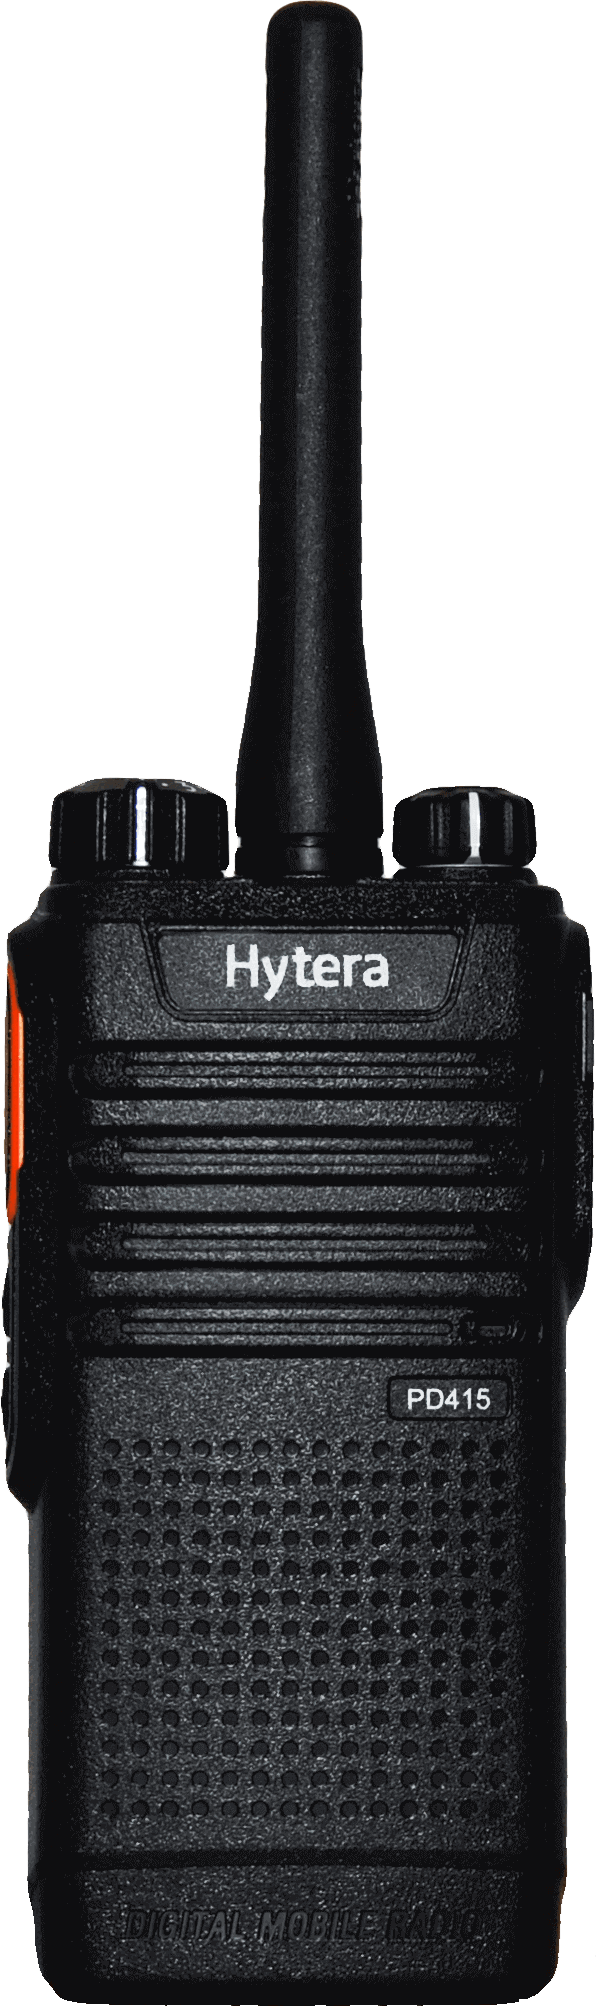 Hytera PD415 featured image